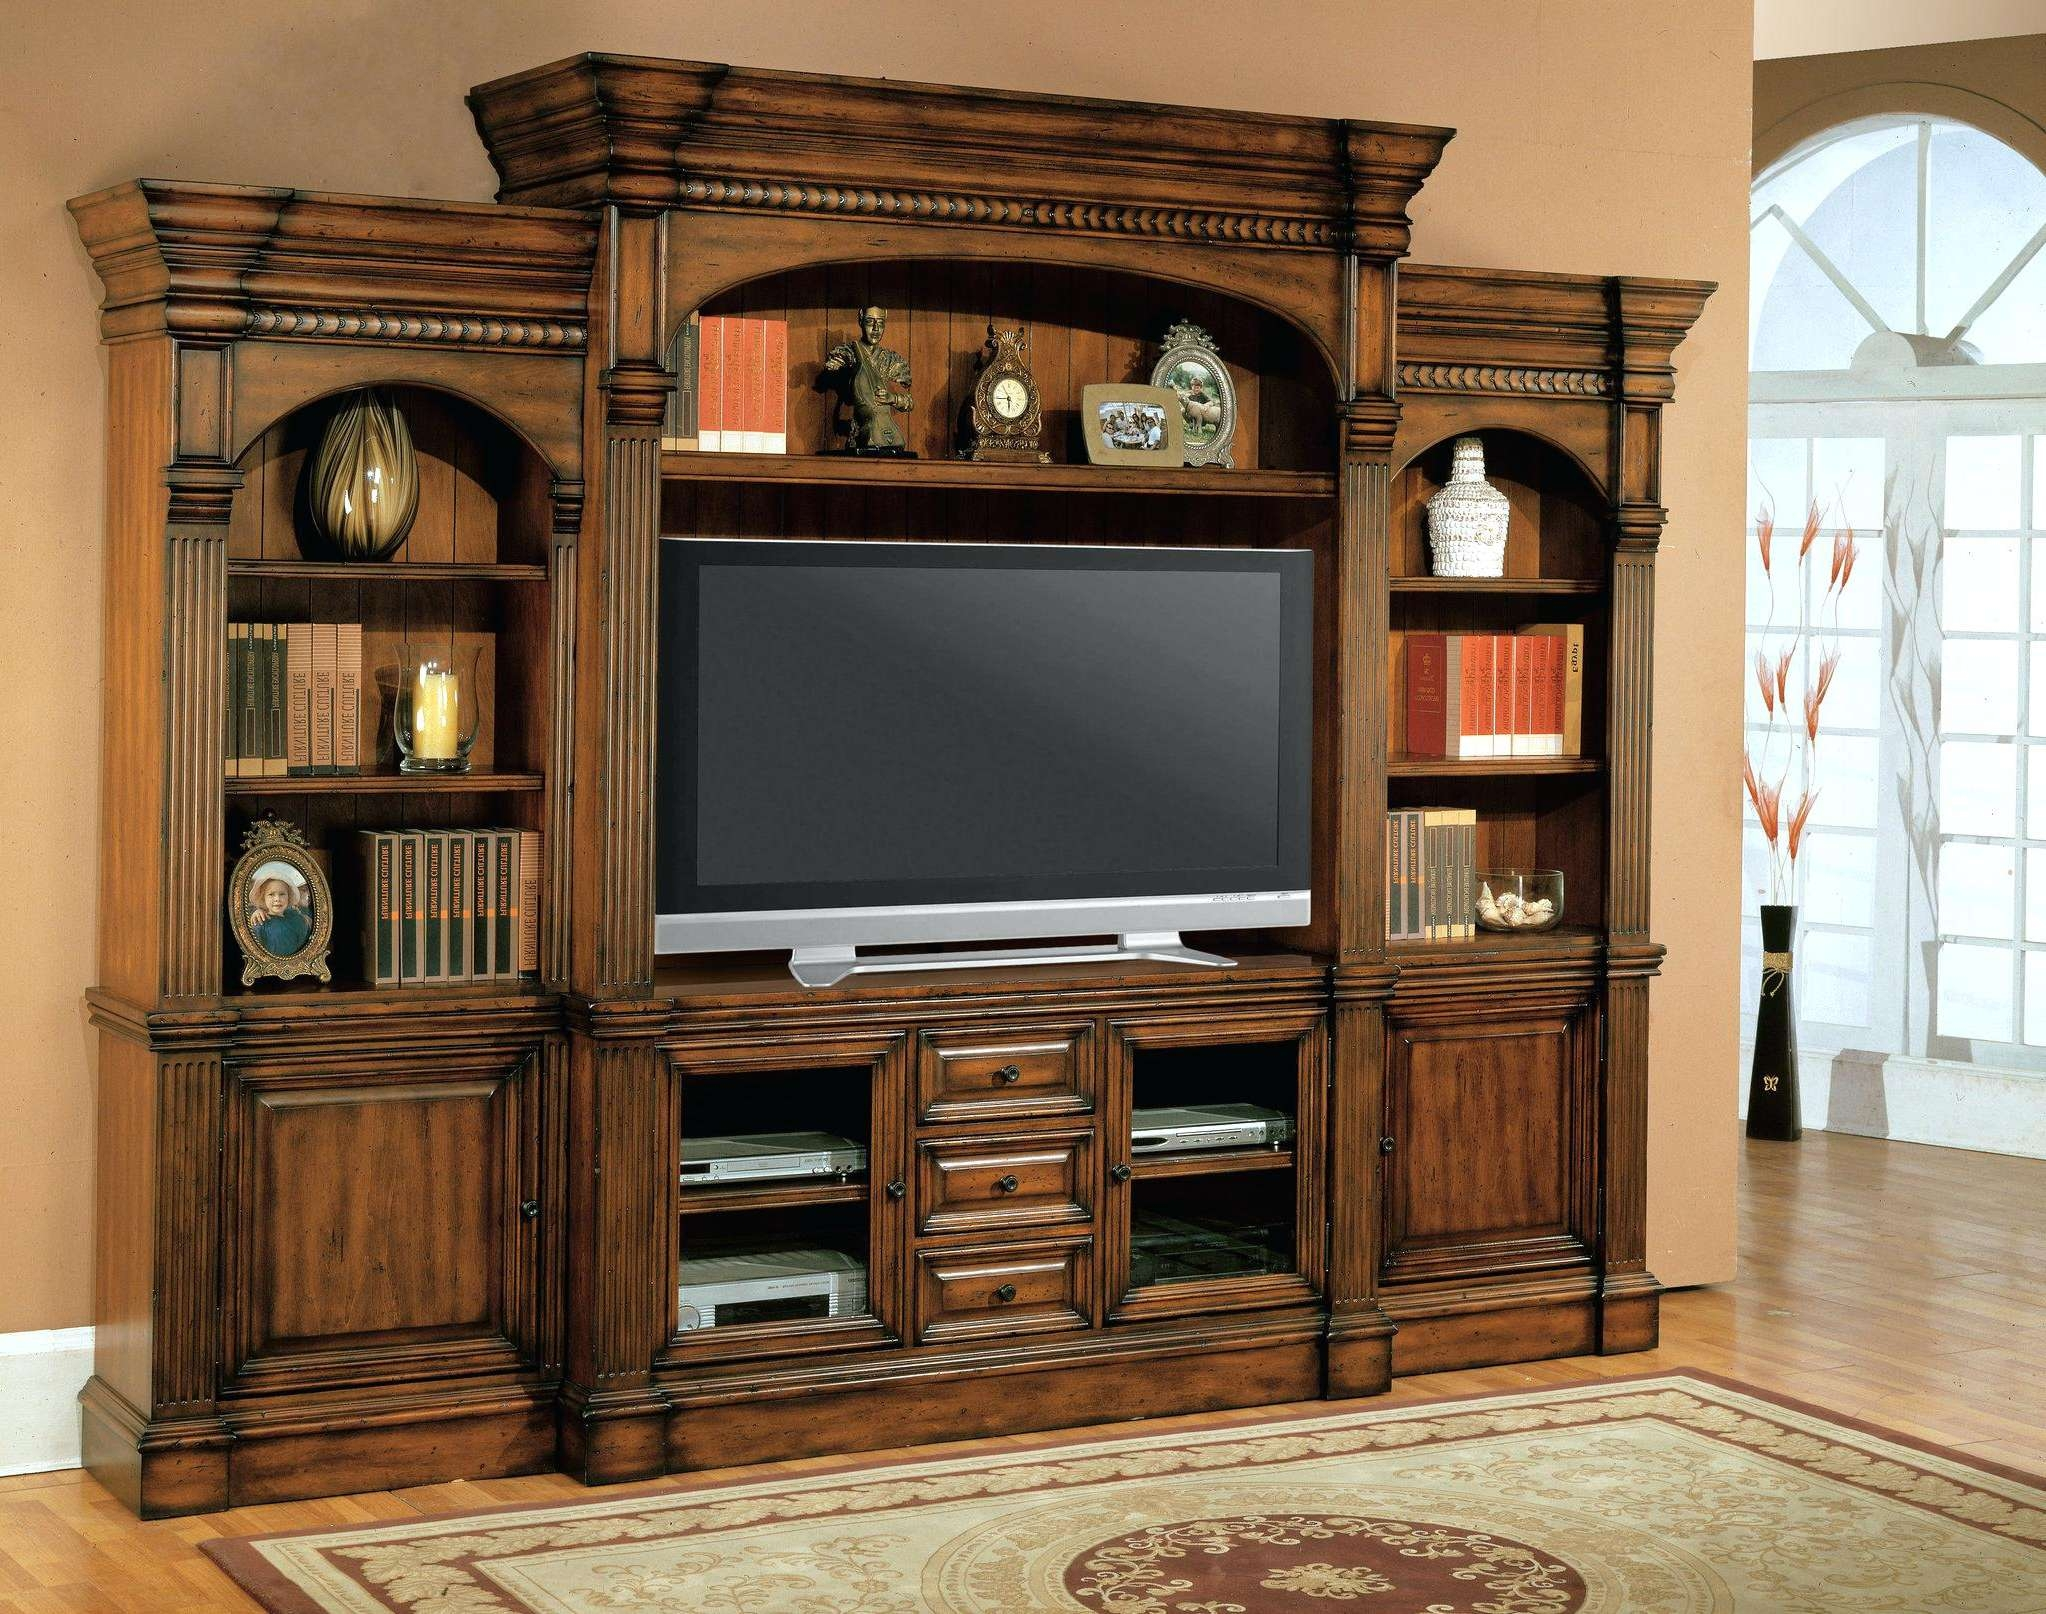 Enclosed Tv Cabinets With Doors Image Collections – Doors Design Ideas In Enclosed Tv Cabinets With Doors (View 6 of 20)